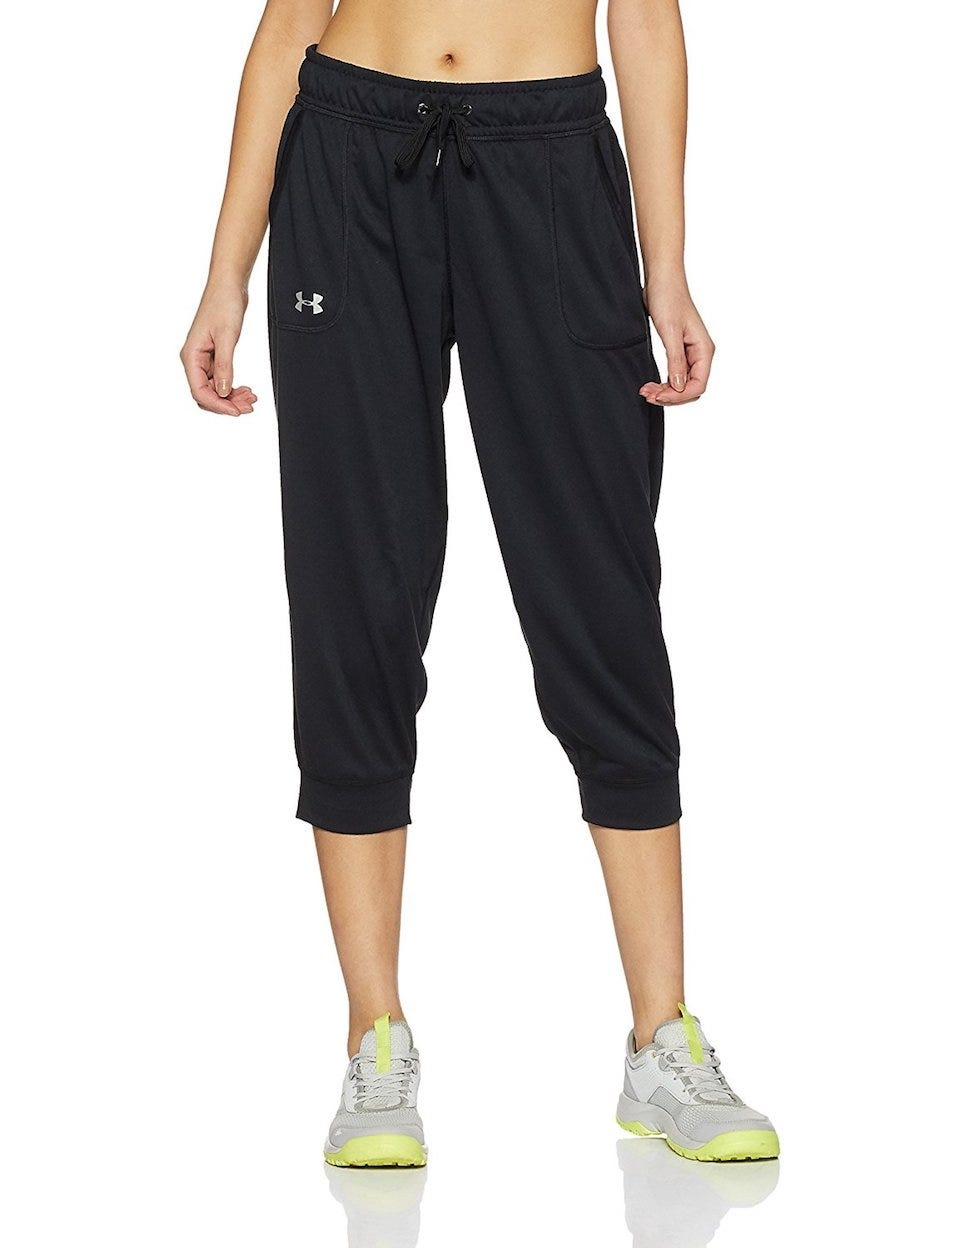 4537f2bd500f2 For women, Under Armour's Women's Tech Capri do a similarly great job as  its its Launch Shorts. Made from ultra-soft fabric, it's quick drying,  wicking away ...